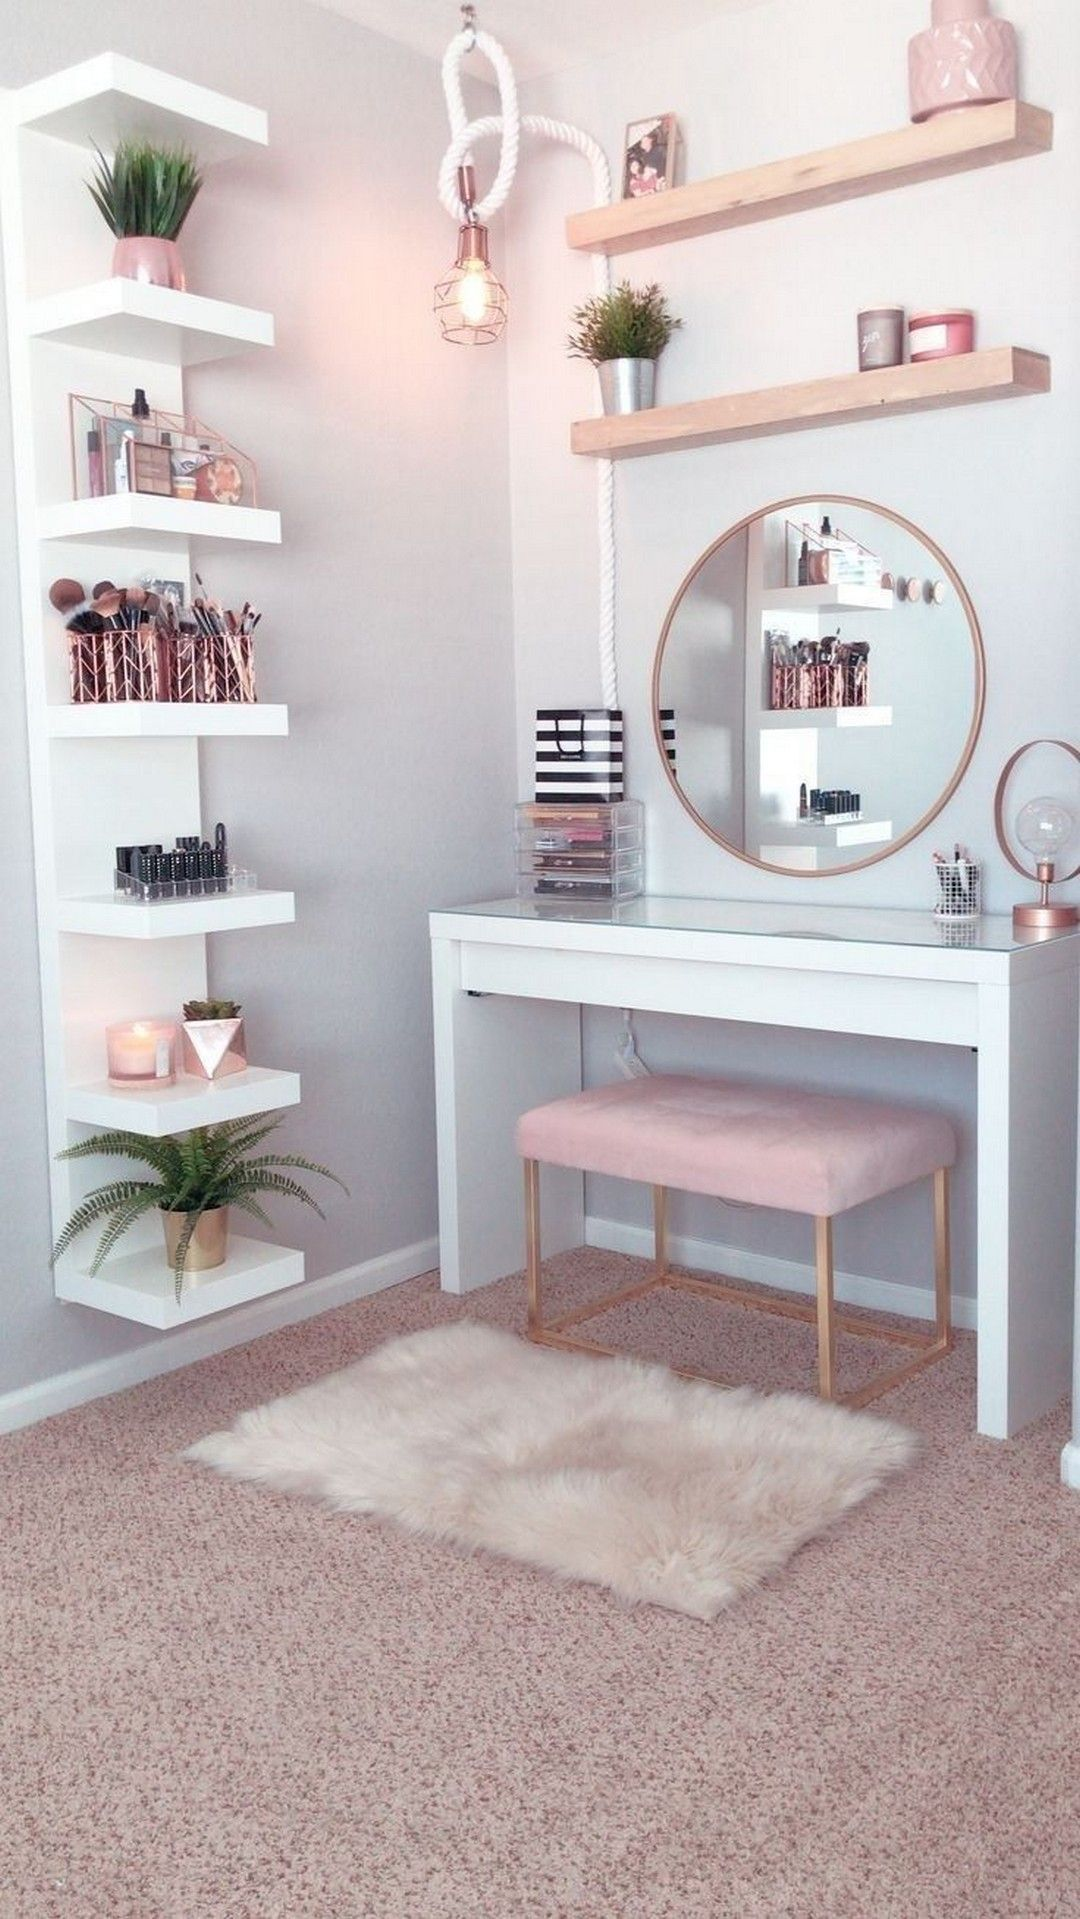 26 Makeup Room Ideas To Brighten Your Morning Routine - Welcome!